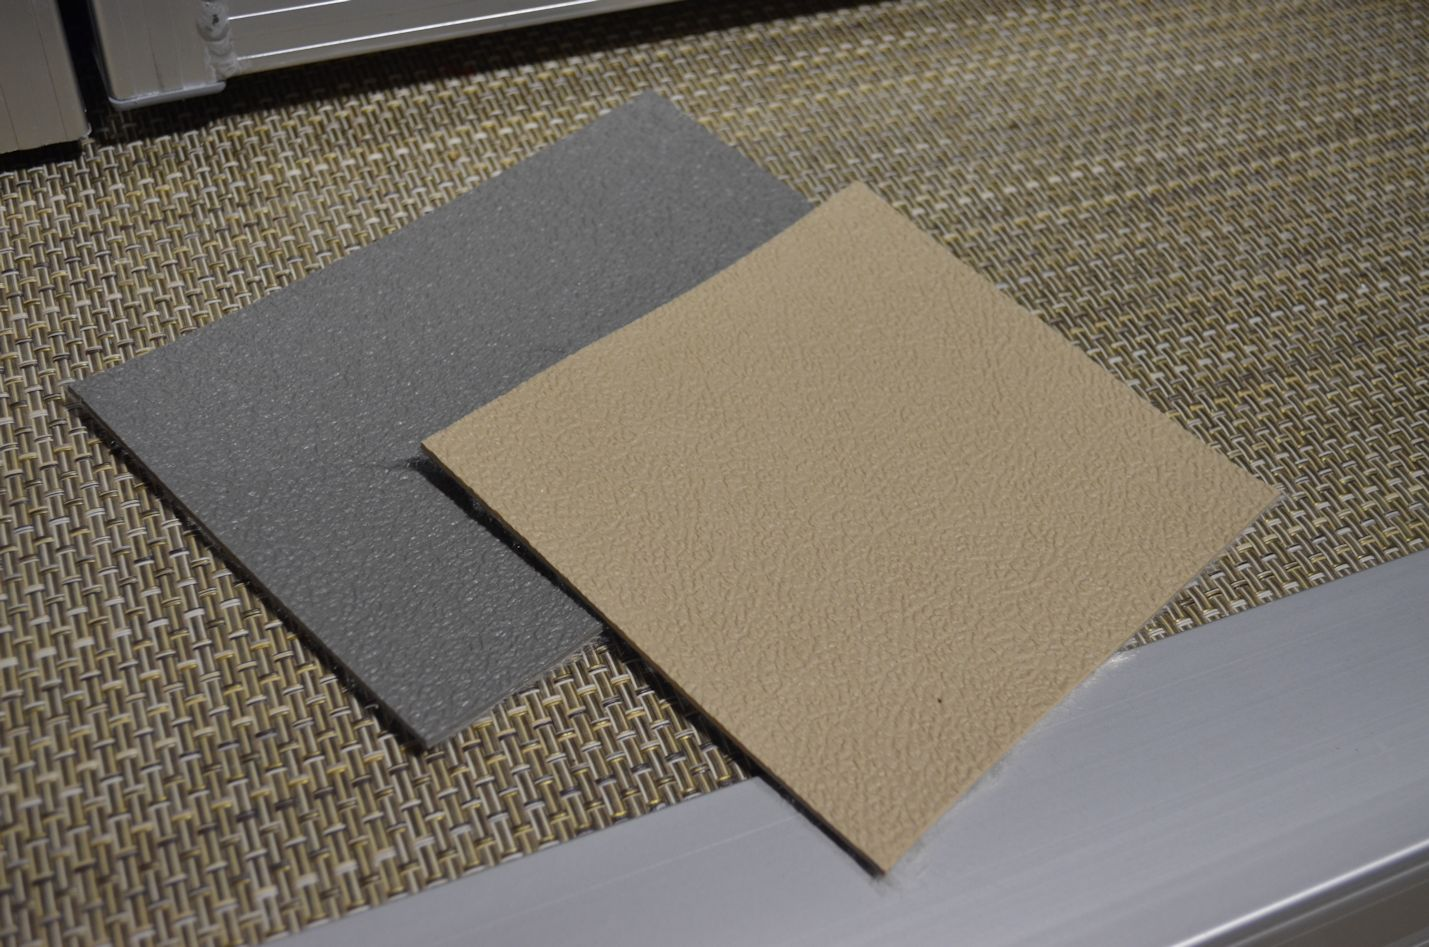 Pontoon carpet vs vinyl carpet vidalondon for Vinyl floor covering